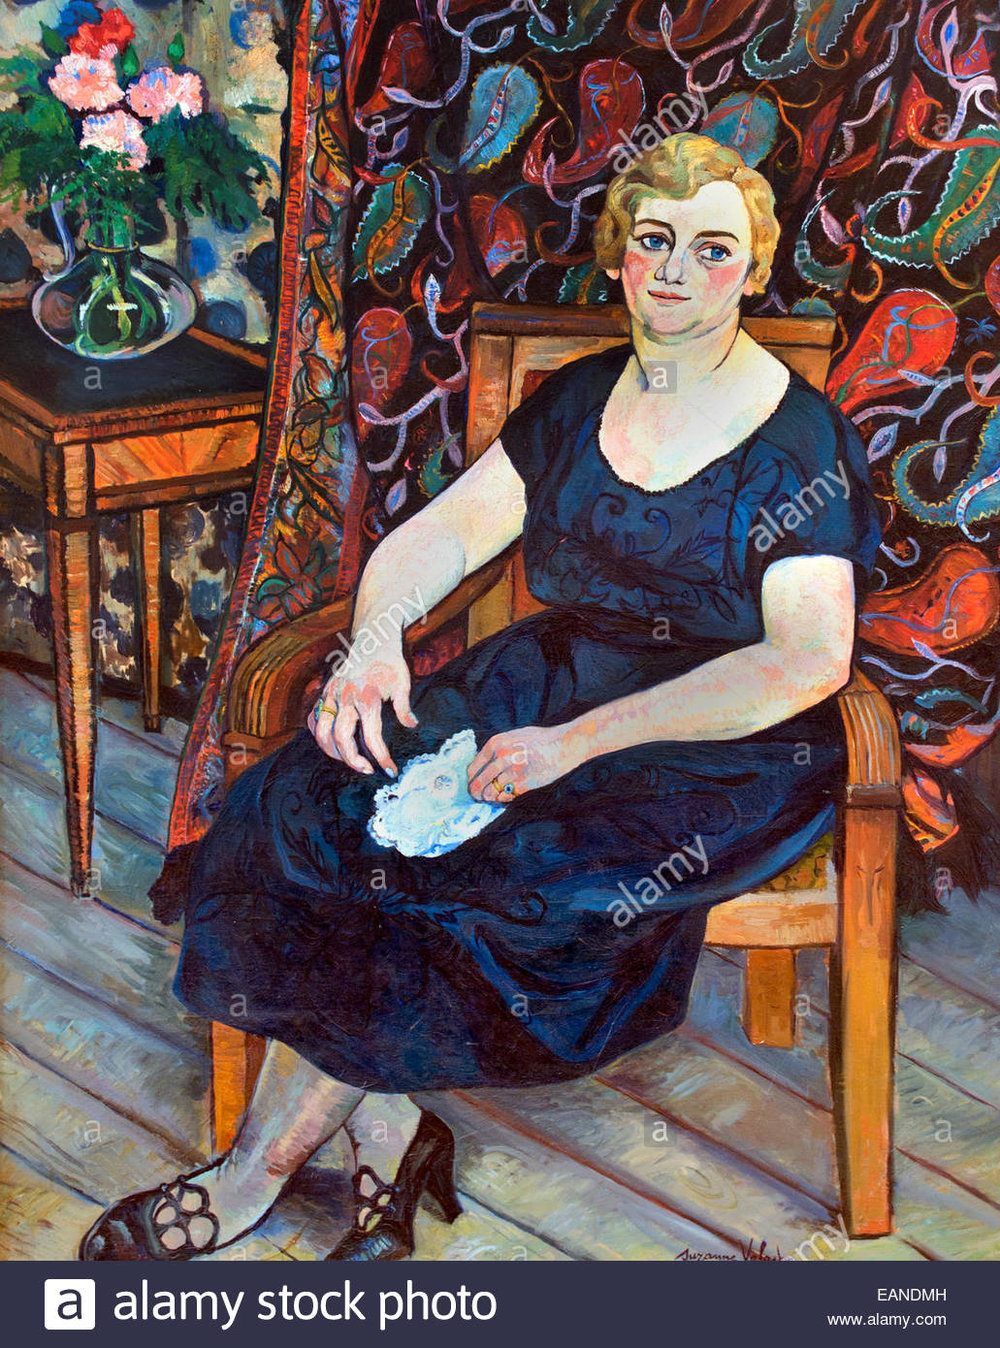 madame-levy-1922-suzanne-valadon-1865-1938-france-french-EANDMH.jpg